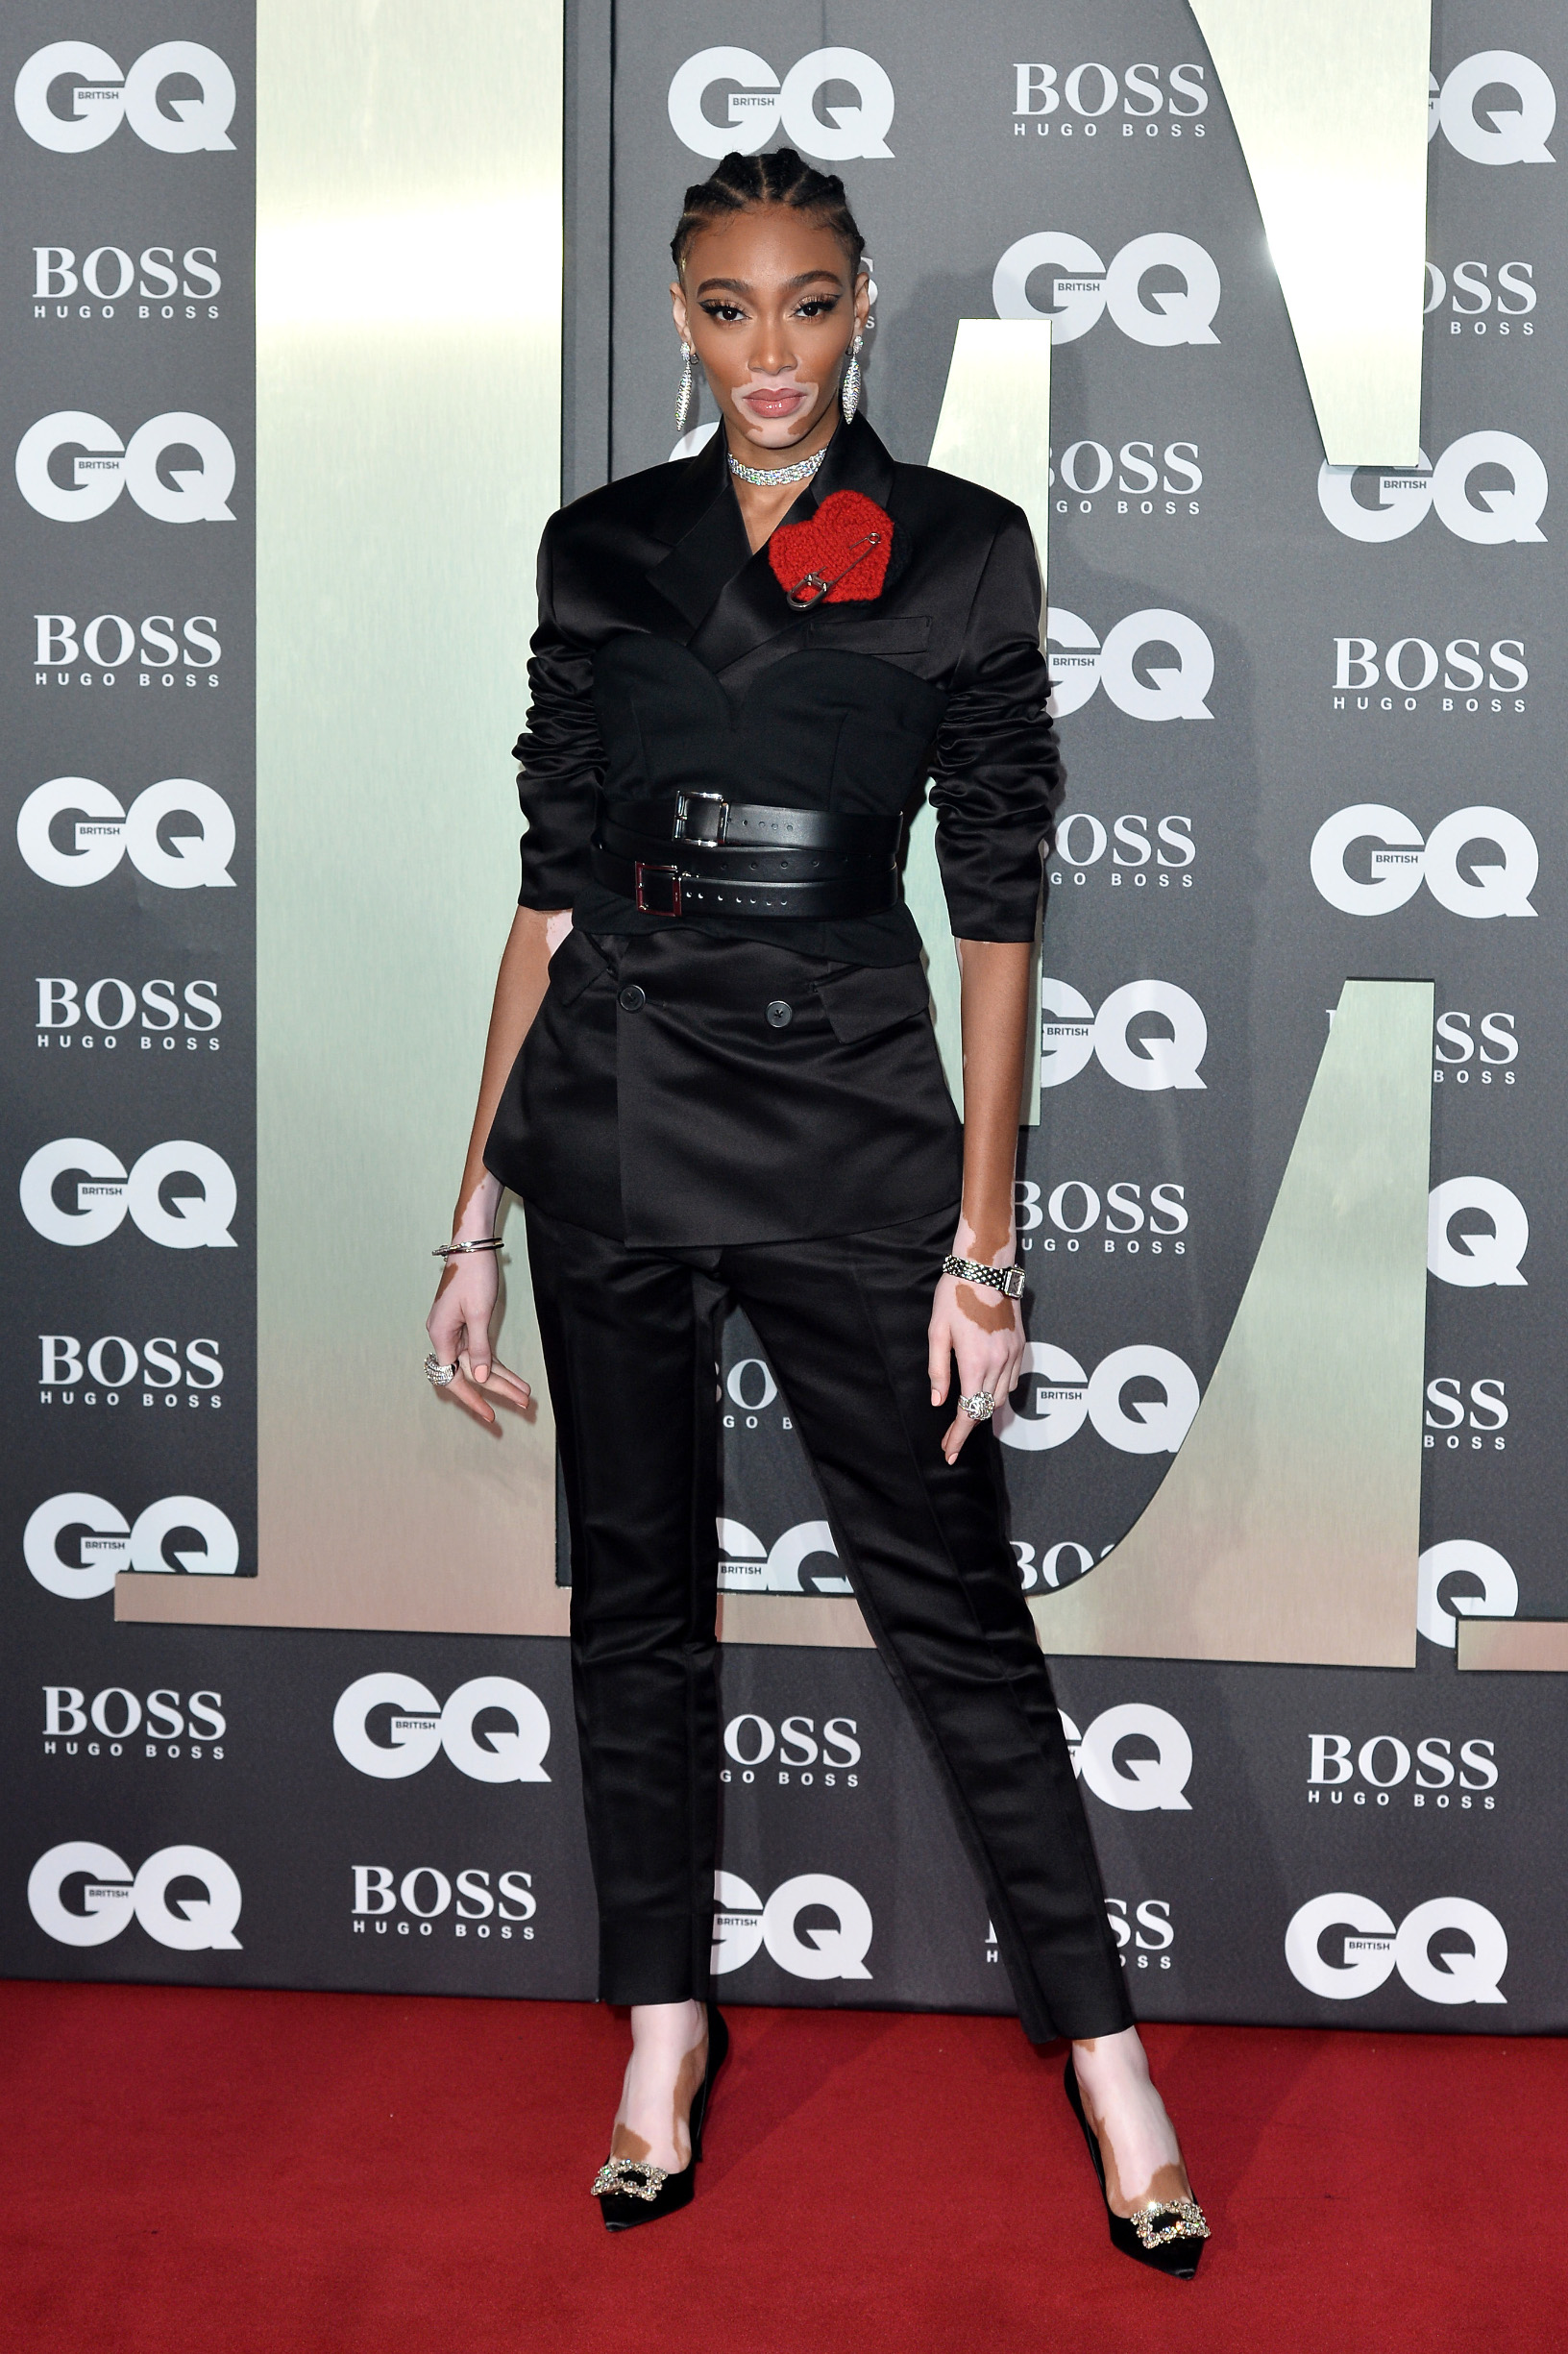 LONDON, ENGLAND - SEPTEMBER 03: Winnie Harlow attends the GQ Men Of The Year Awards 2019 at Tate Modern on September 03, 2019 in London, England. (Photo by Jeff Spicer/Getty Images)